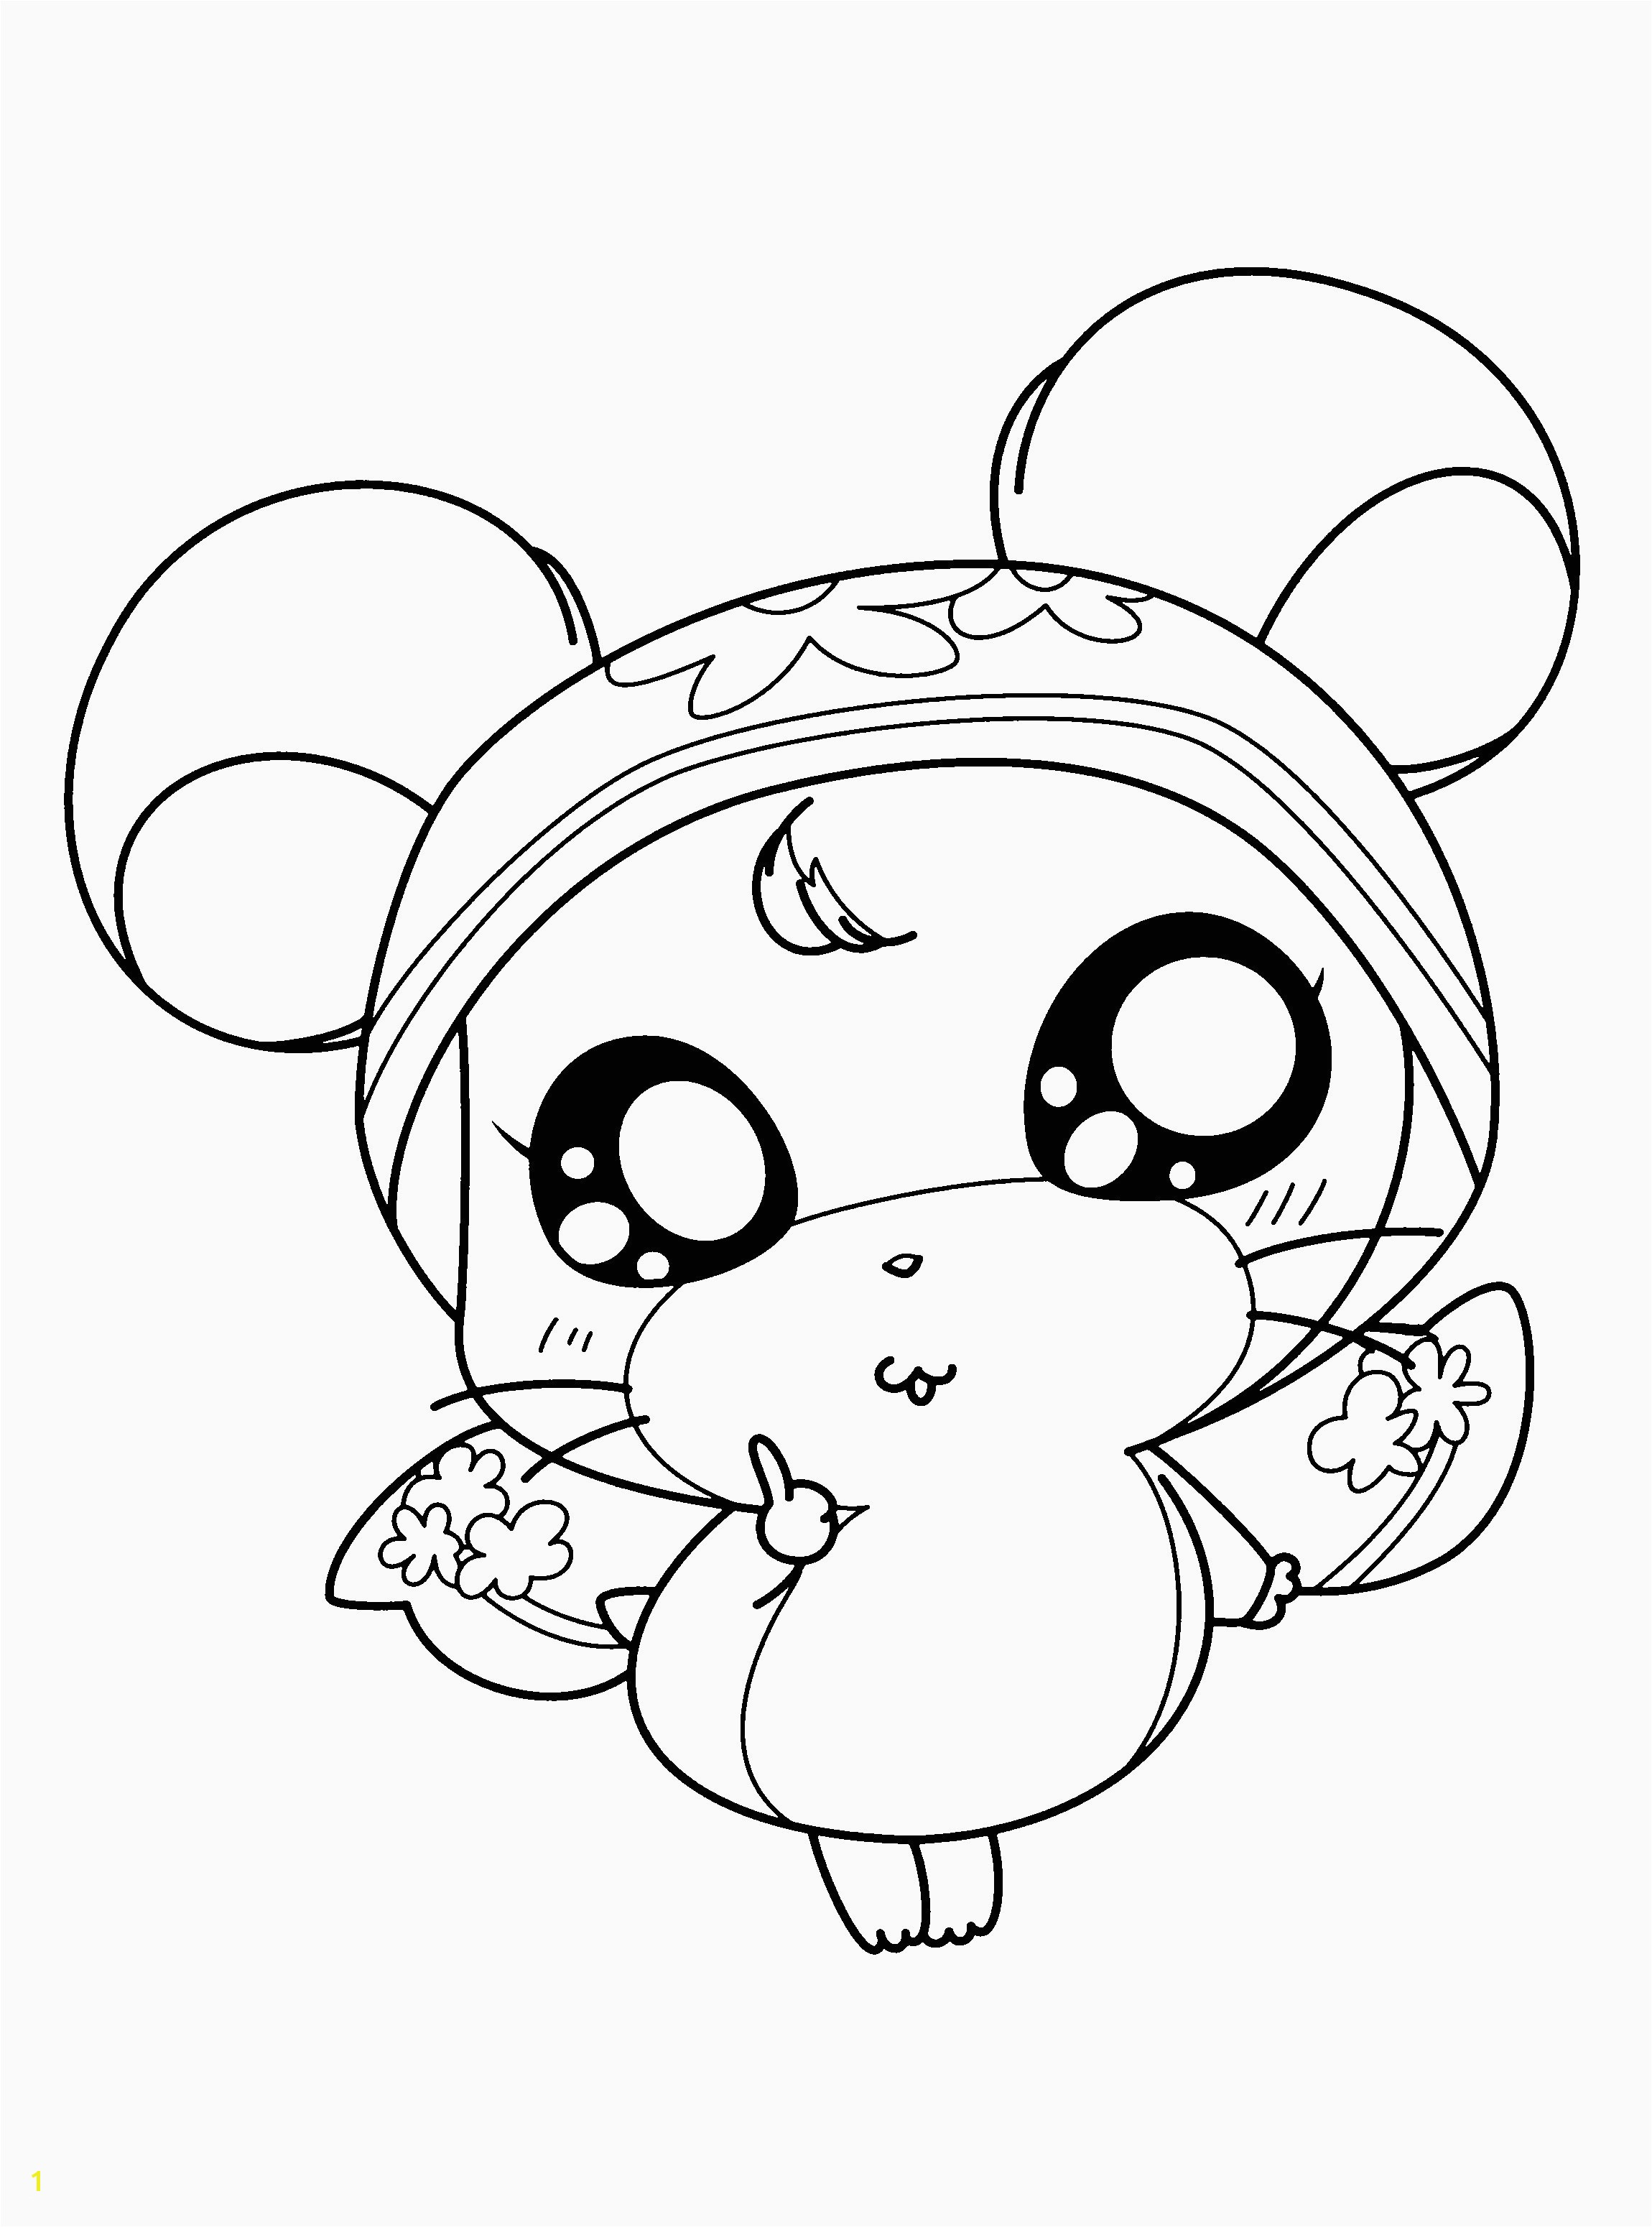 Animal Coloring Pages for Kids Unique Printable Coloring Pages for Kids Elegant Coloring Printables 0d